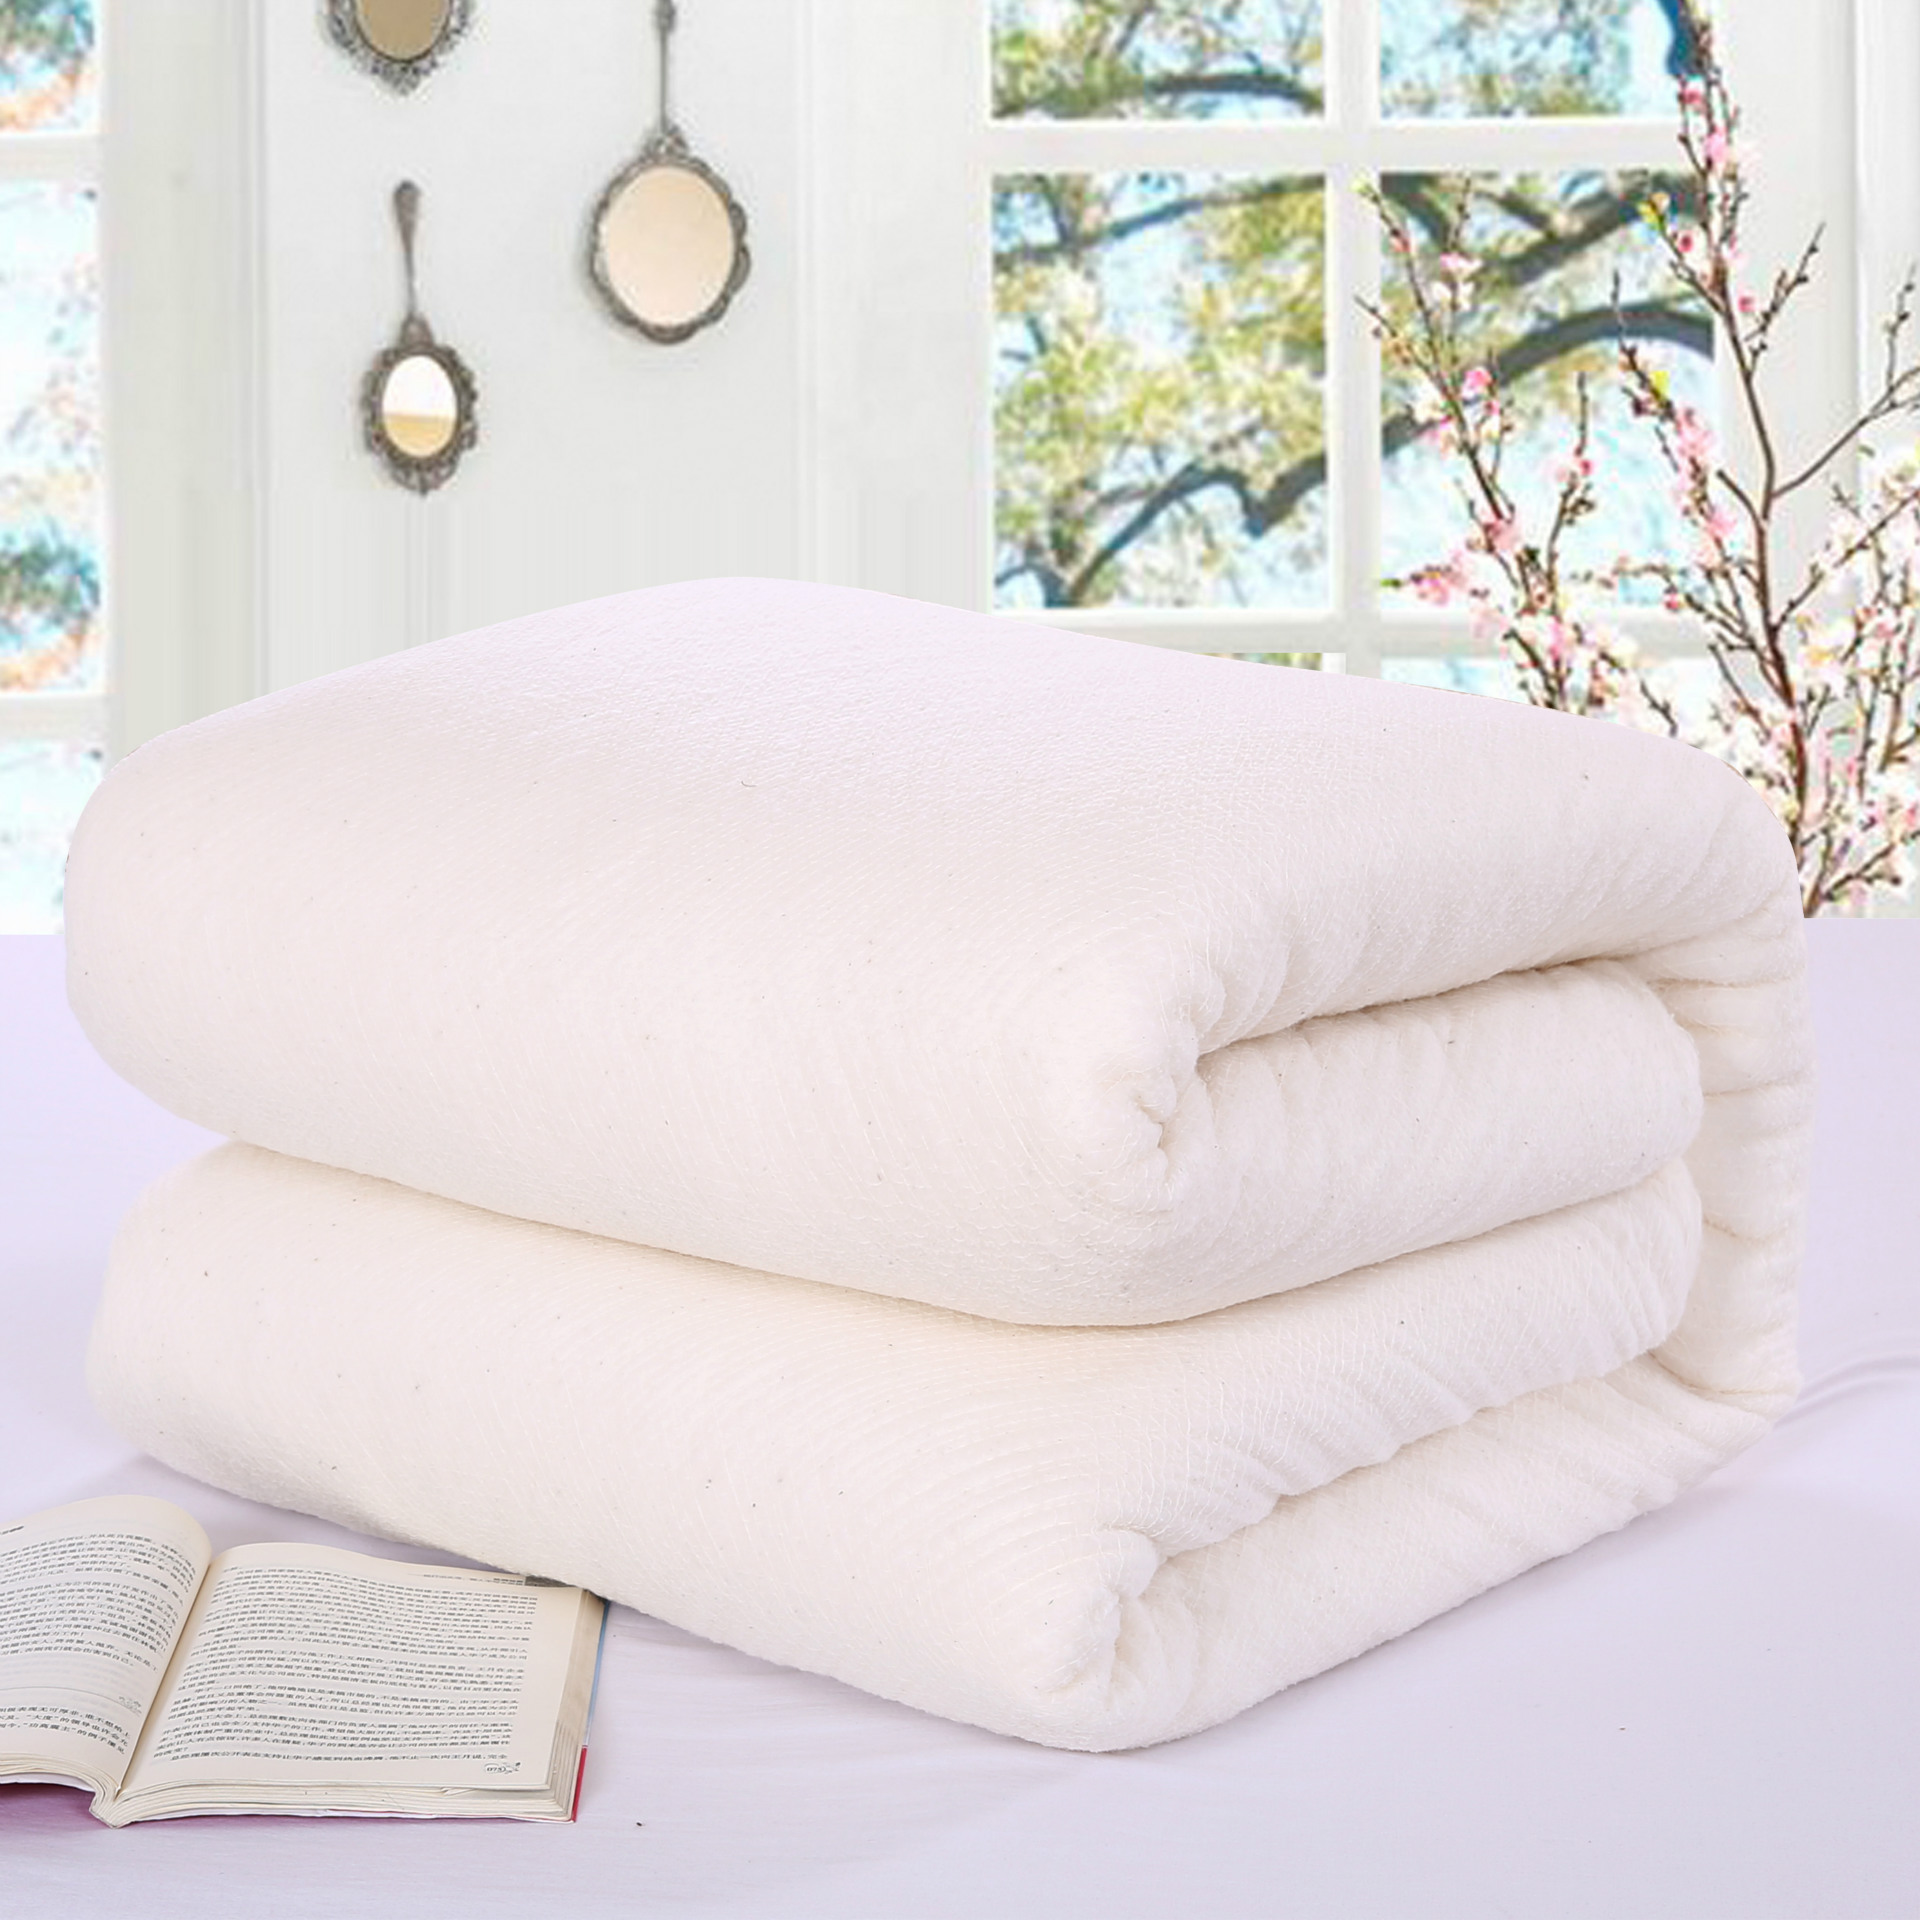 fleece pattern bedding this little onto kitten from itm pet soft cuddle embroidered words puppy fun and throughout warm dog a corner star the stars polar has comforter one blanket me petface range